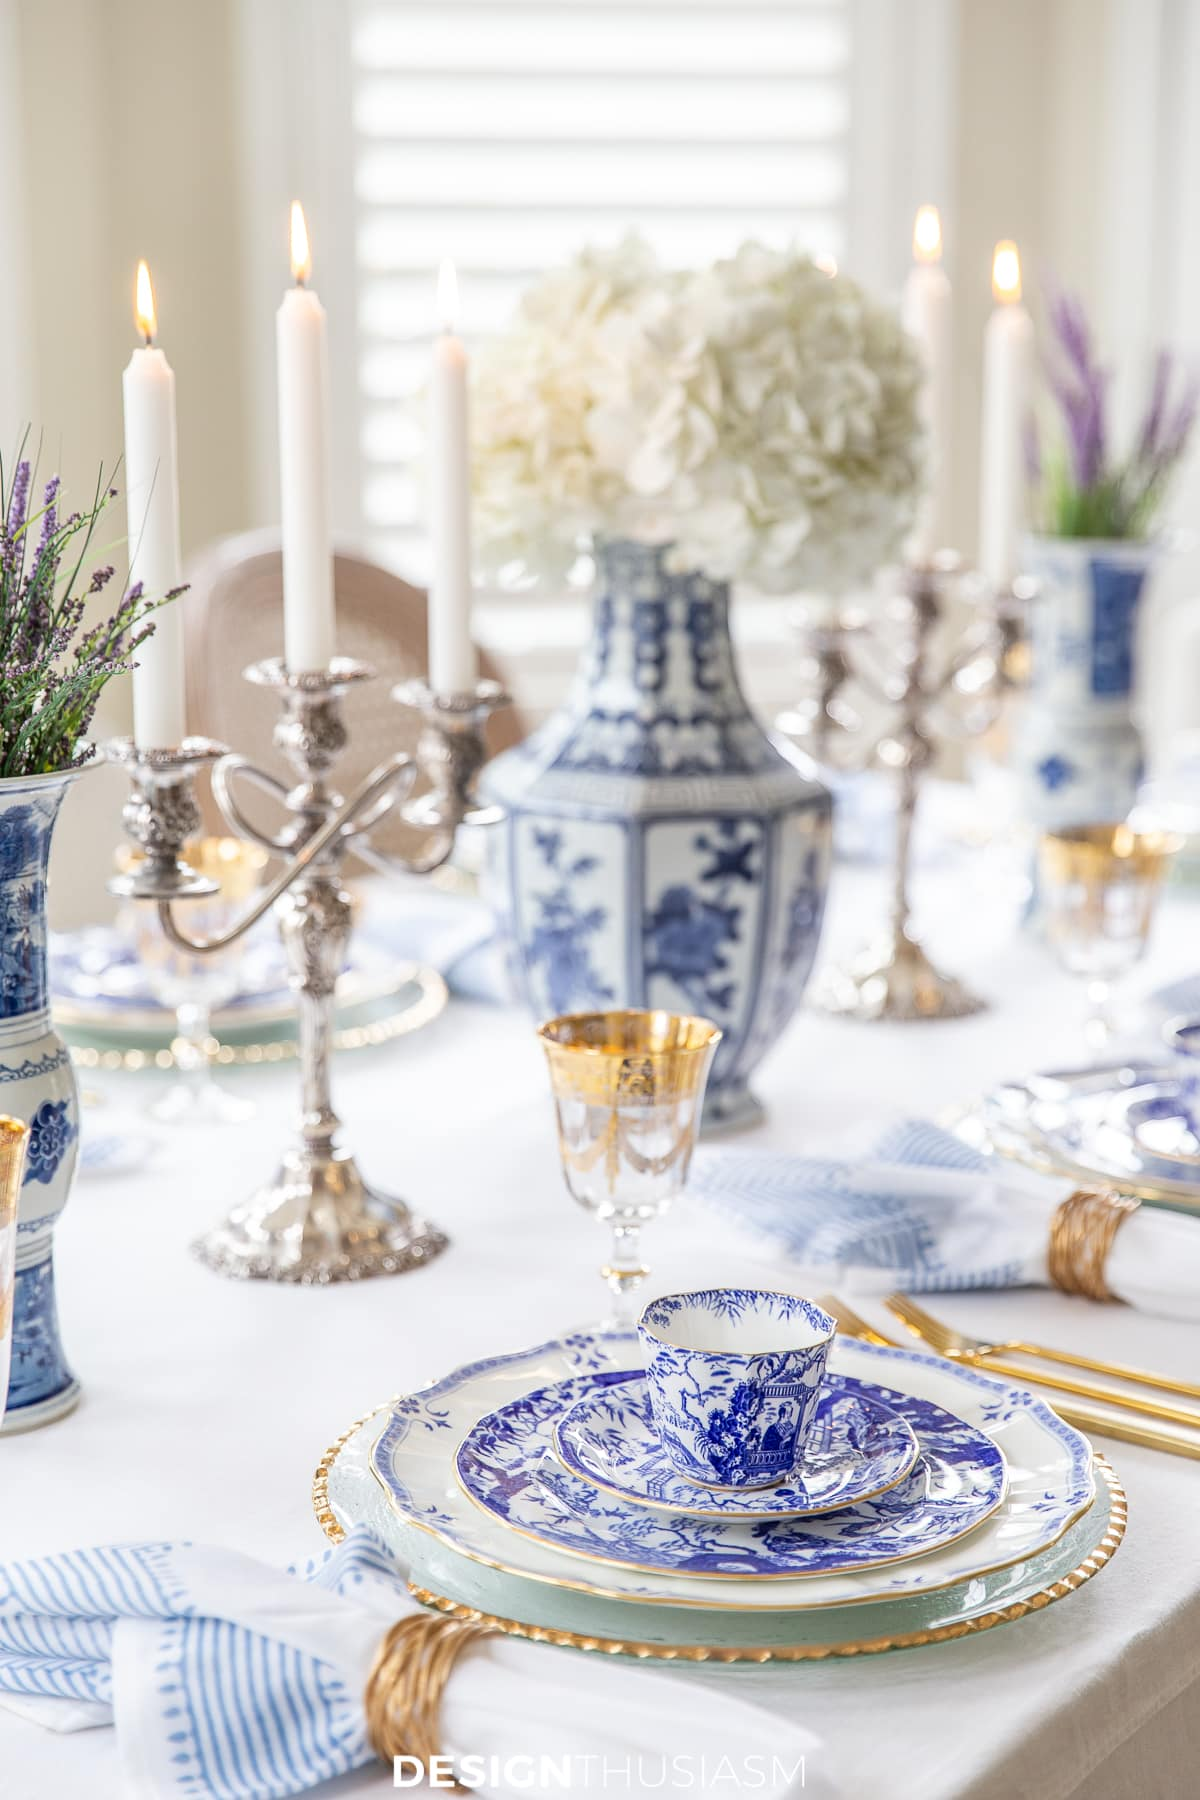 Using Blue And White China In A Hanukkah Or Christmas Table Setting